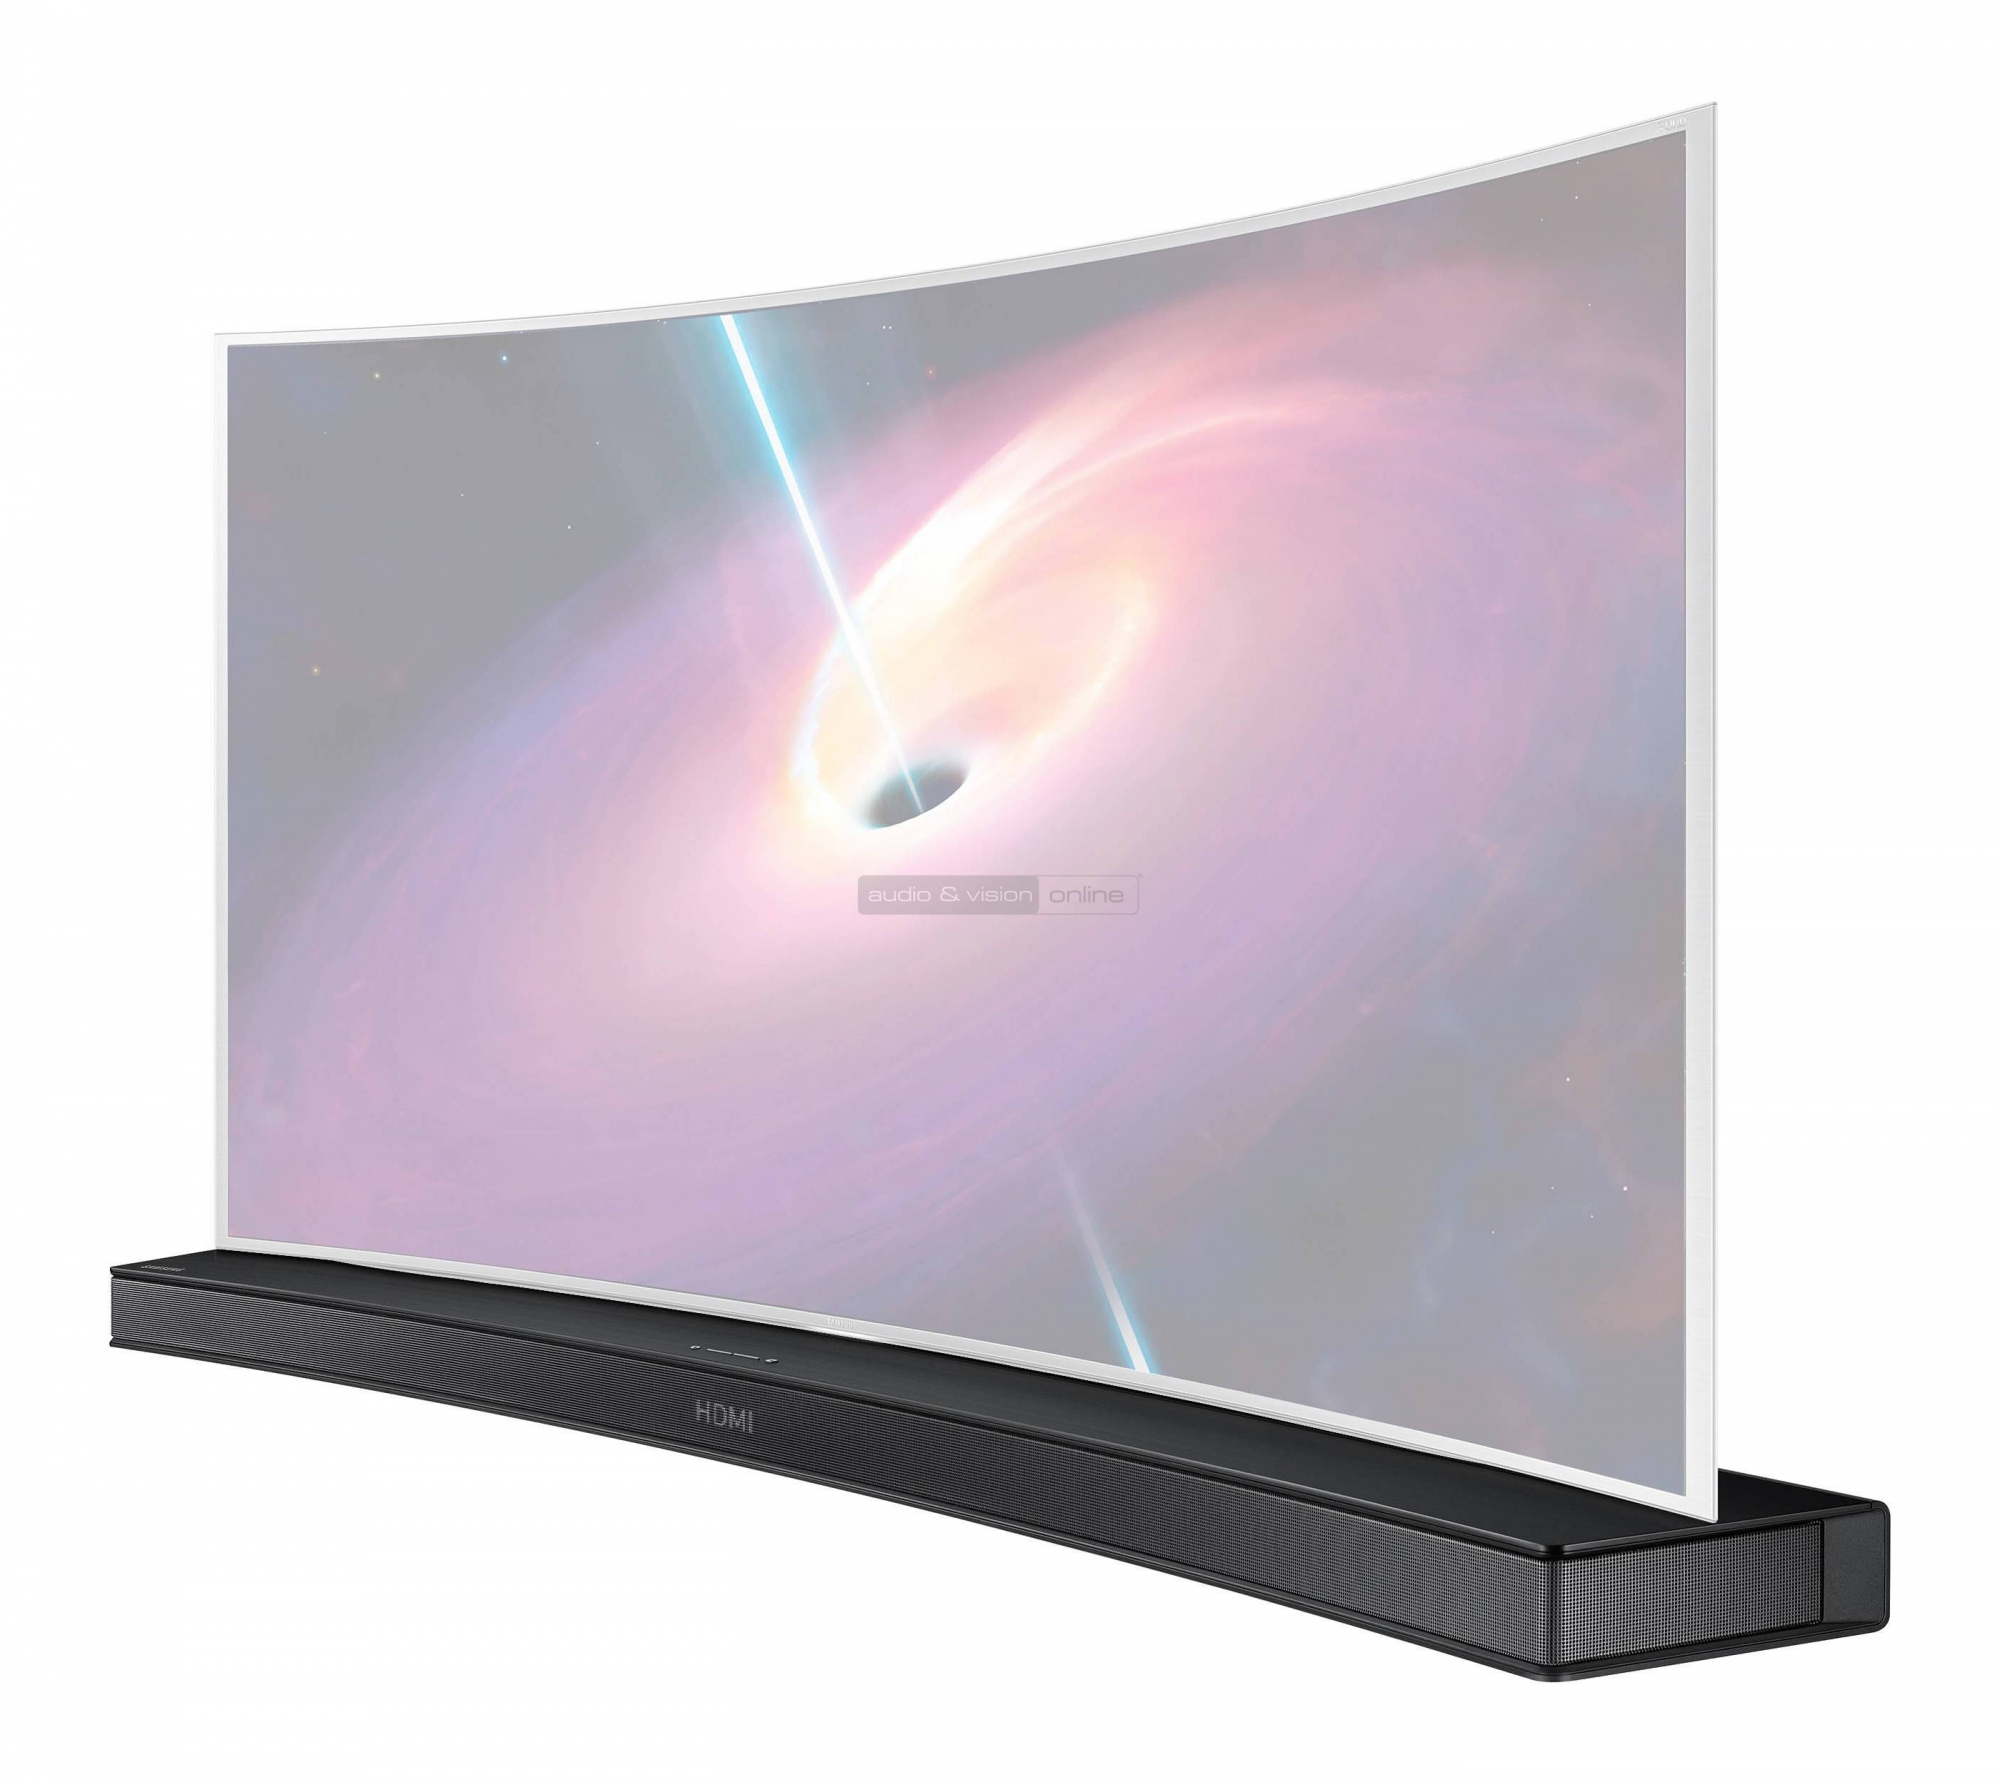 Sony 4k Ultra Short Throw Projector Review further Samsung 4k Suhd Tv Alana Galaxy S6 Hediye Ediyor likewise Samsung Ue55js8500 Suhd 4k Tv Teszt 1478 together with Best Tvs Ces 2015 4k Flexible Oled To Quantum Dot Suhd further Deal Buy A Samsung 4k Tv Get A Galaxy S6 Free. on js8500